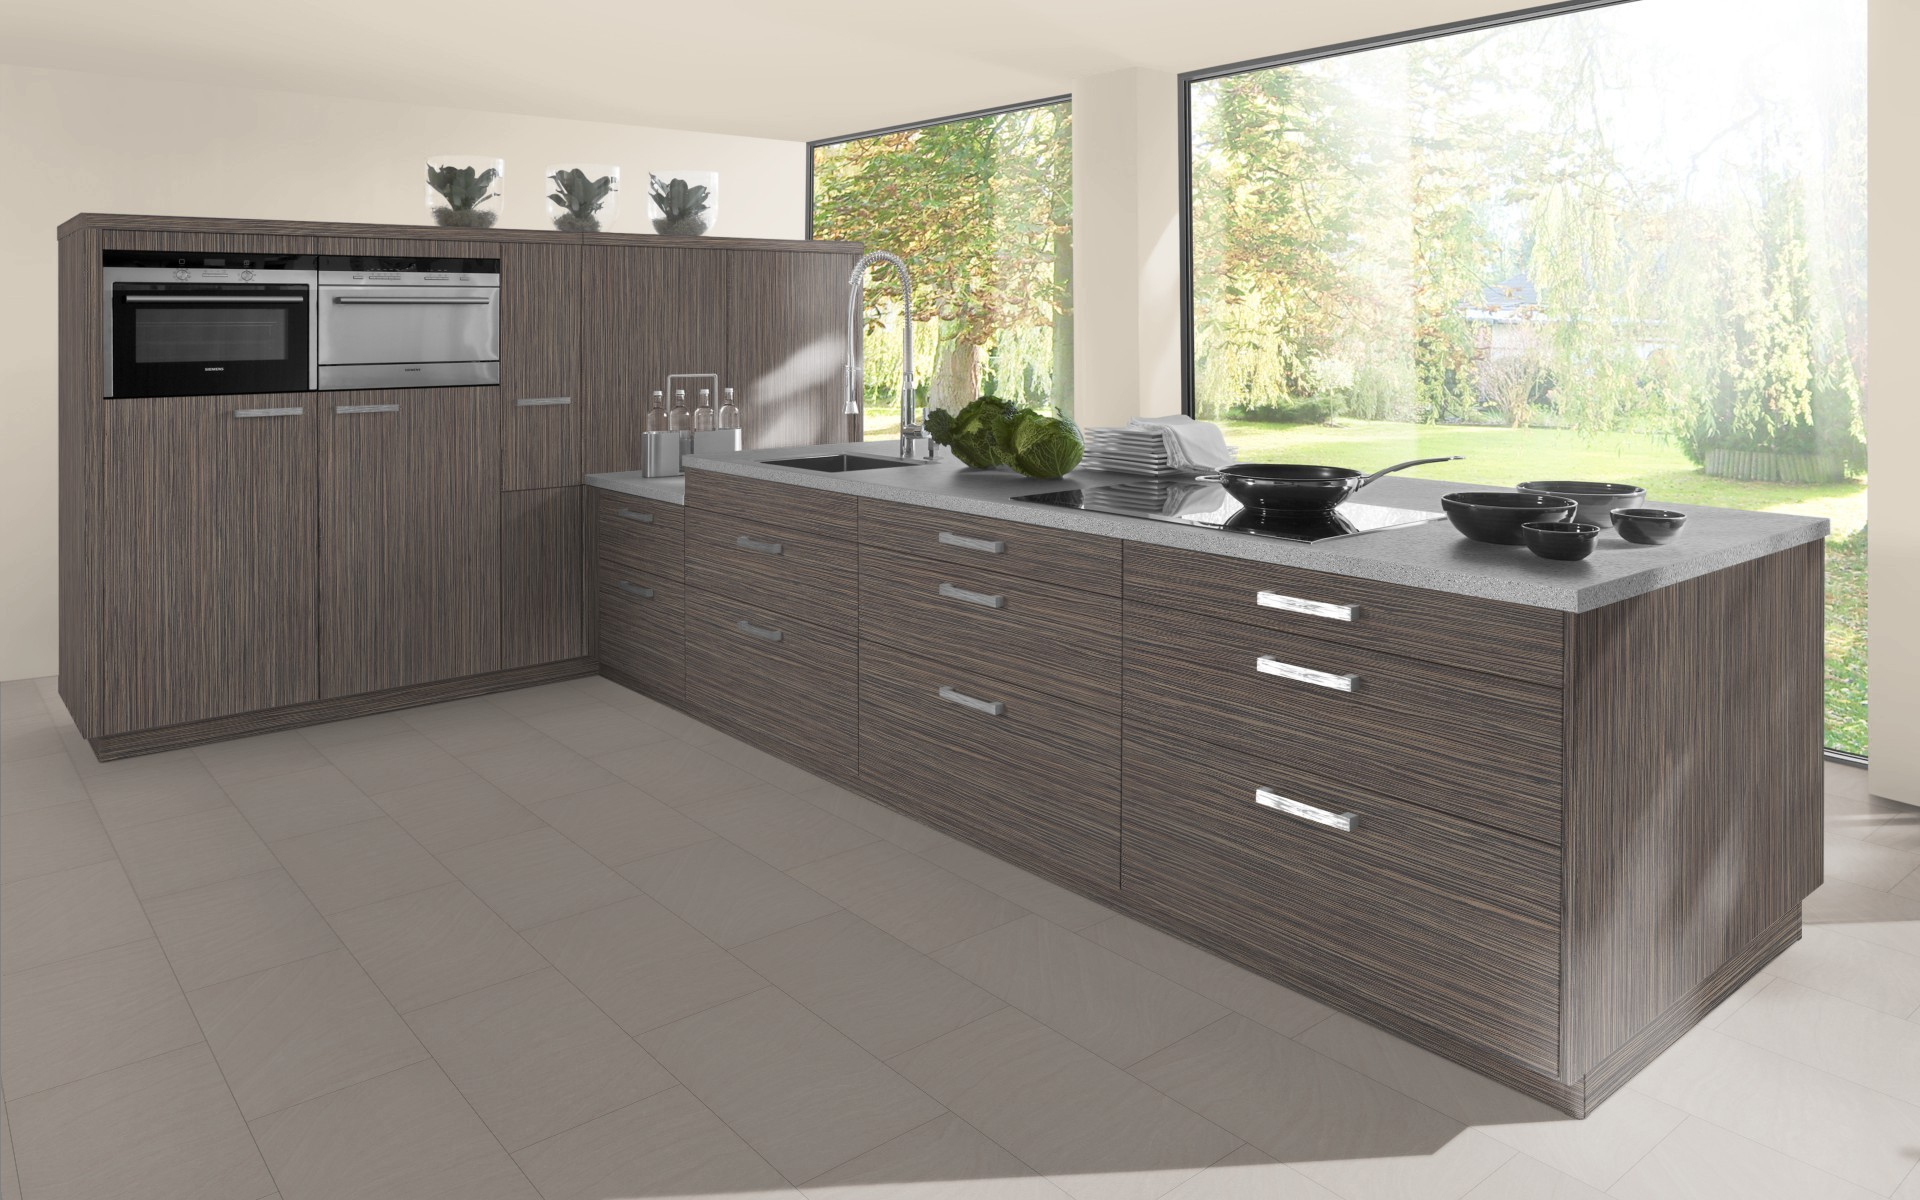 Textured Wood Kitchen Door in Grey Beige Zebrano